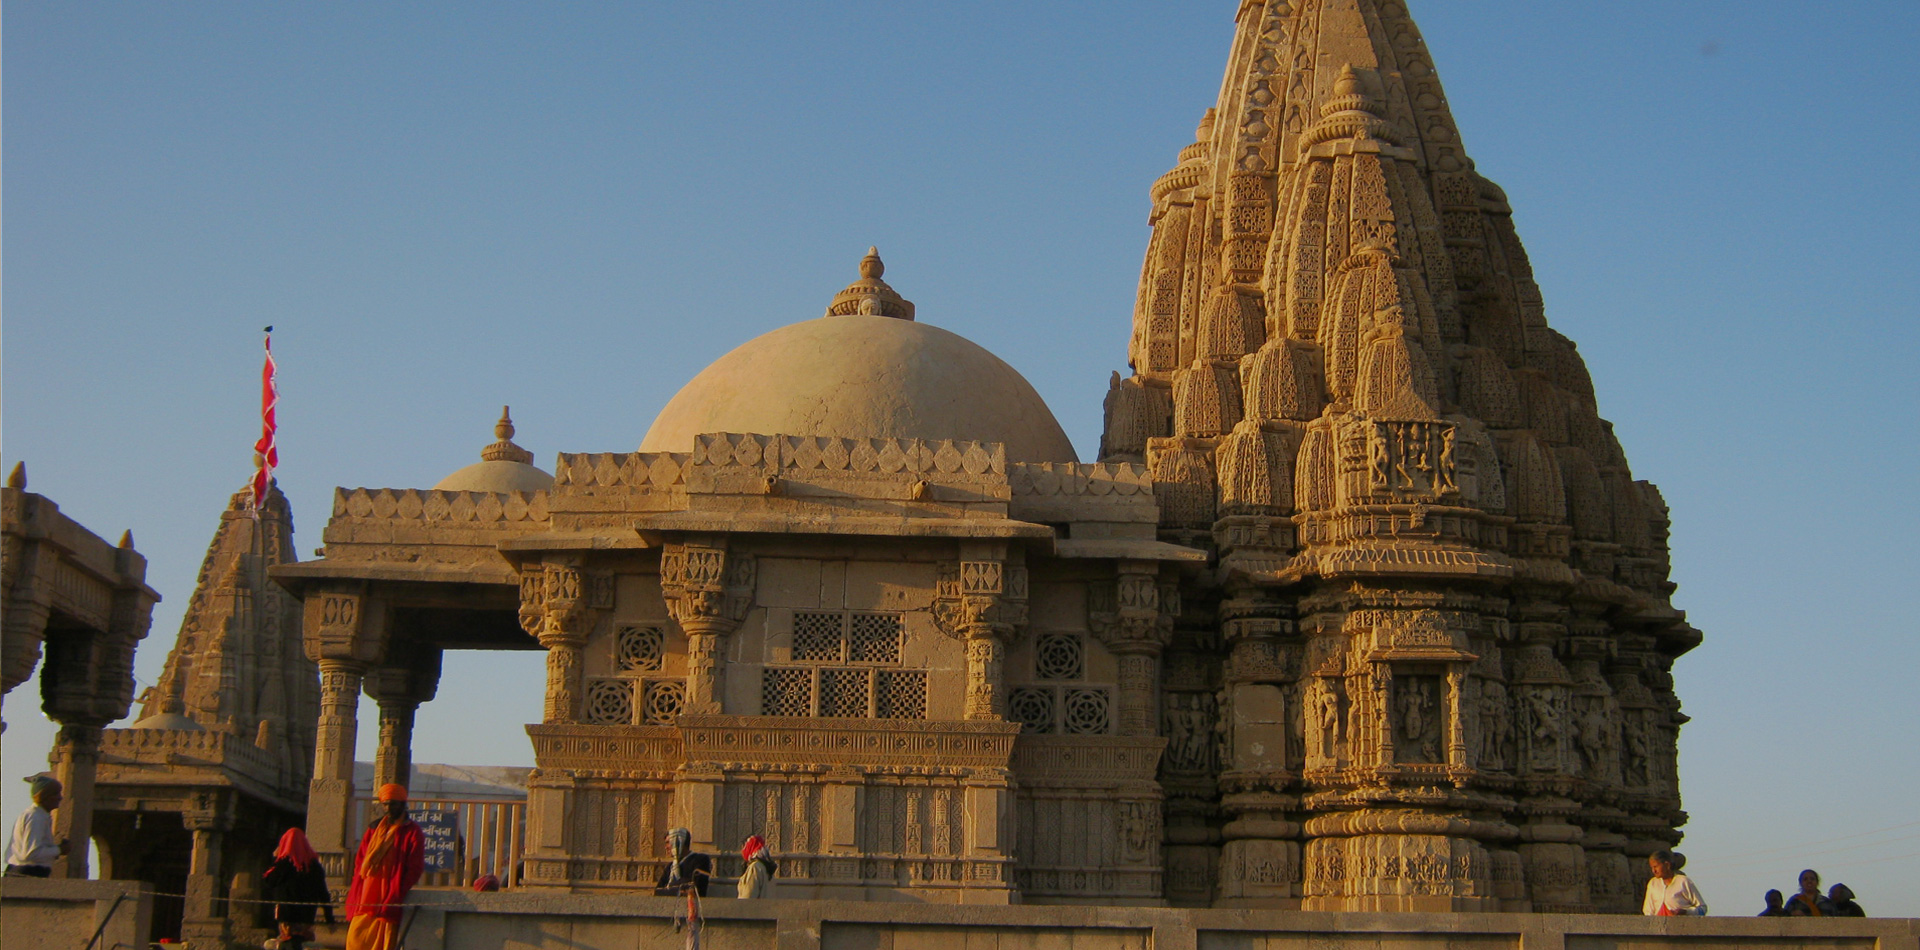 Dwarkadhish Temple Image